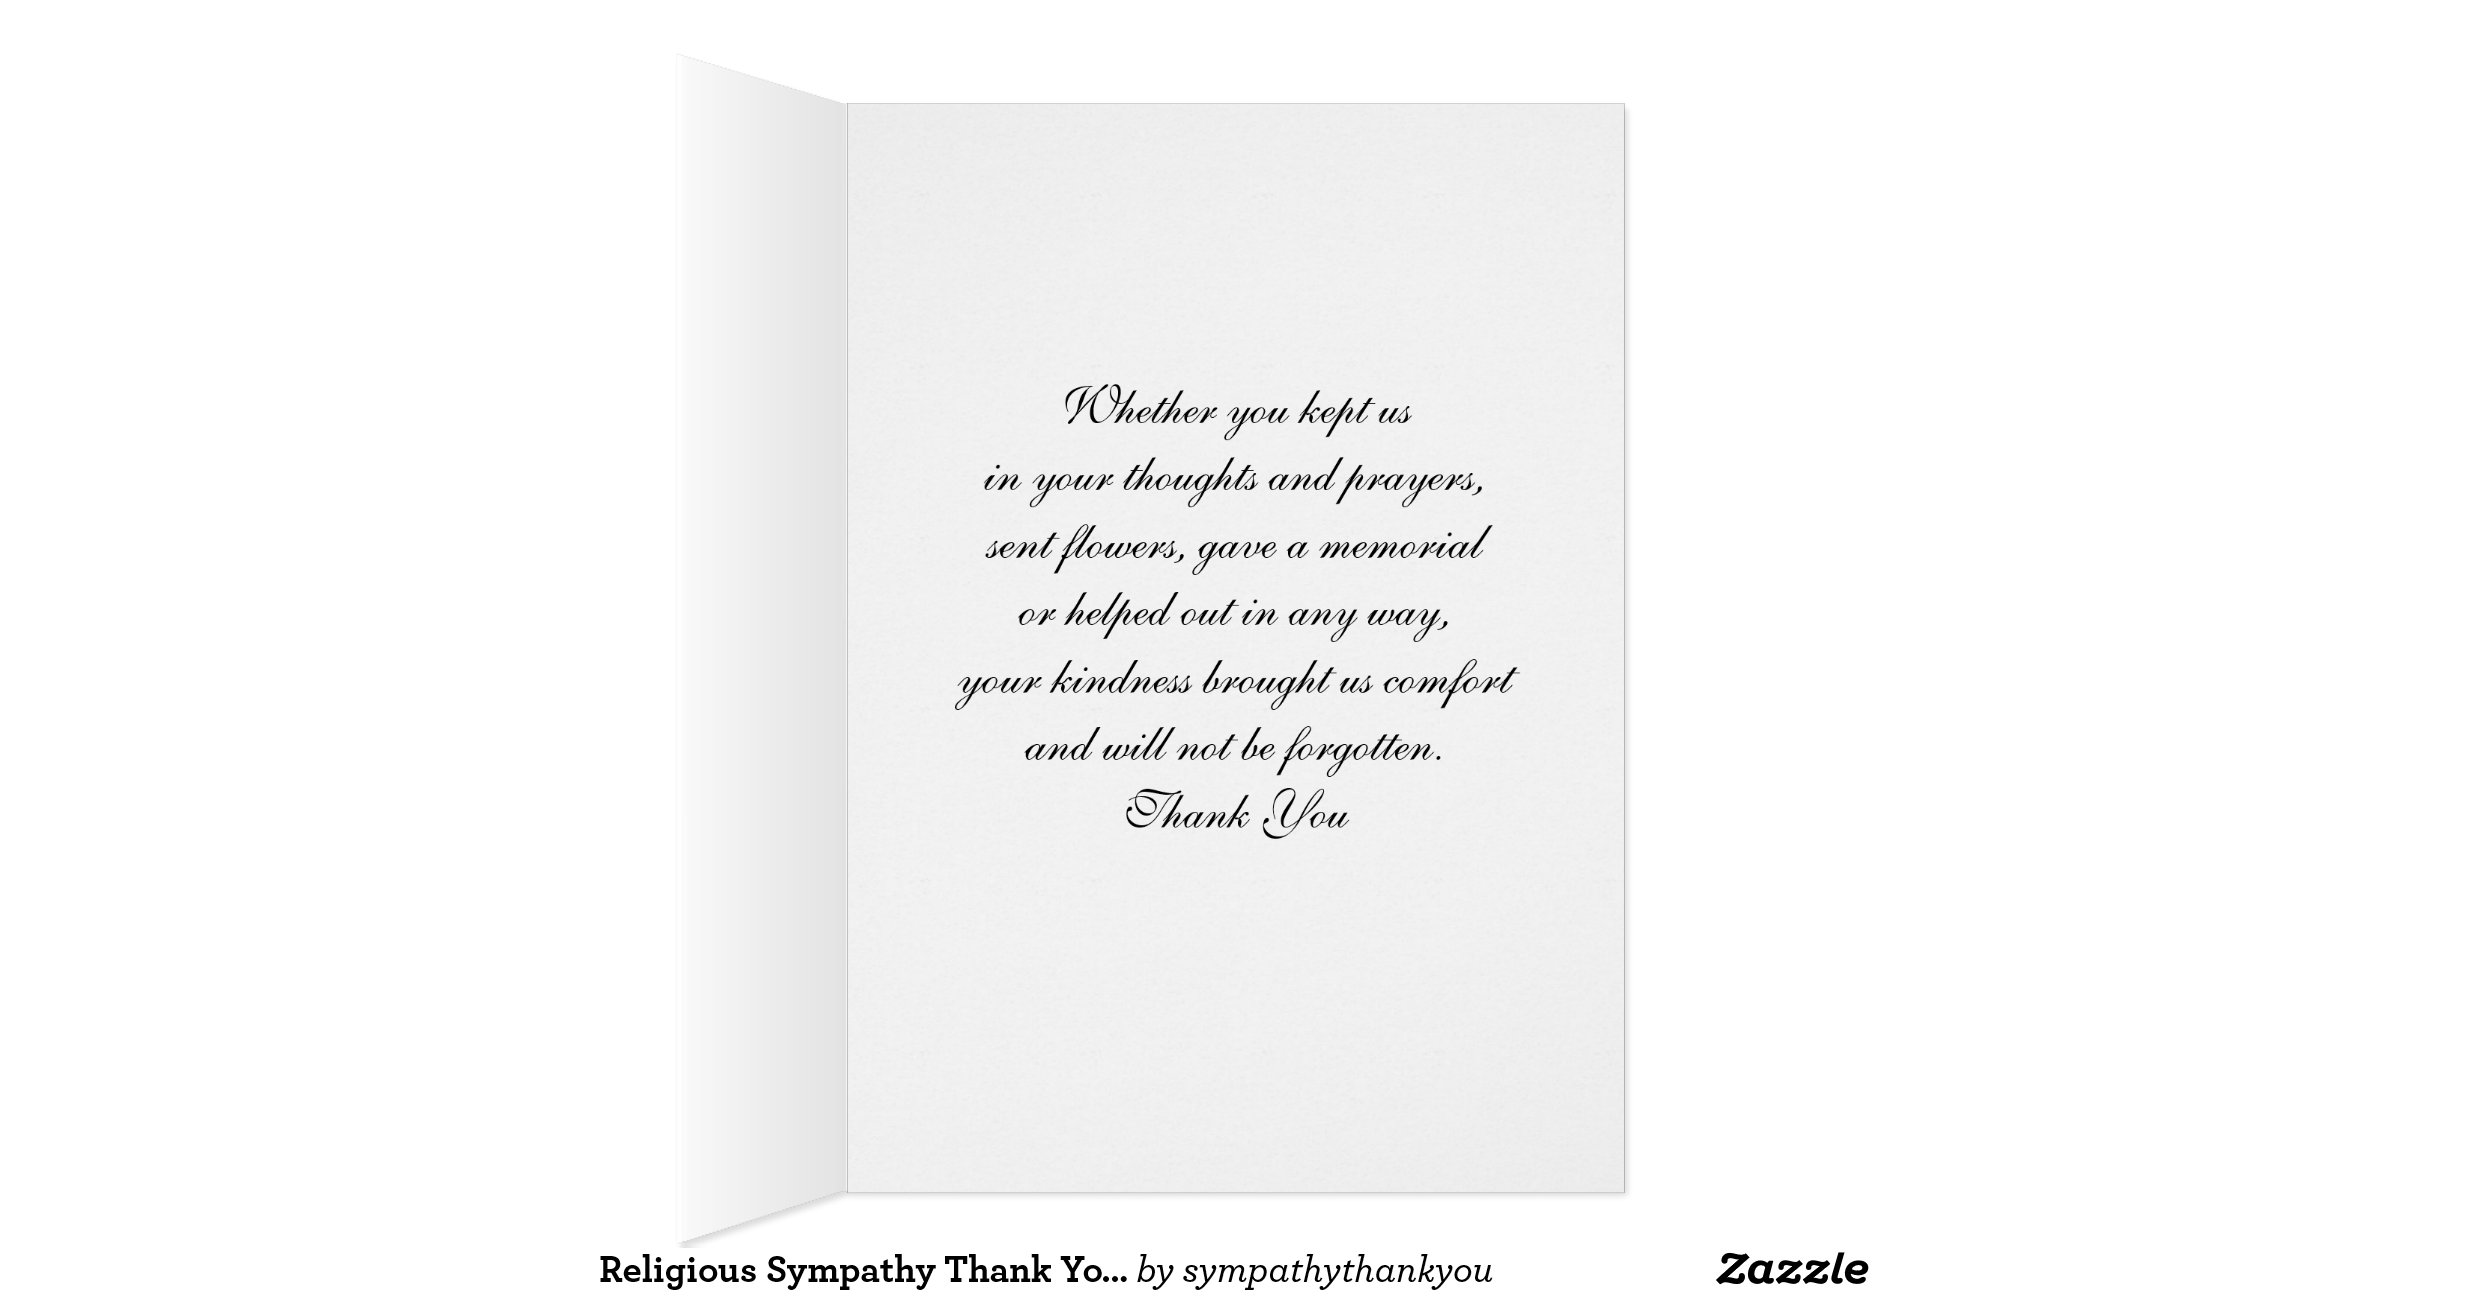 religious_sympathy_thank_you_note_card_dove